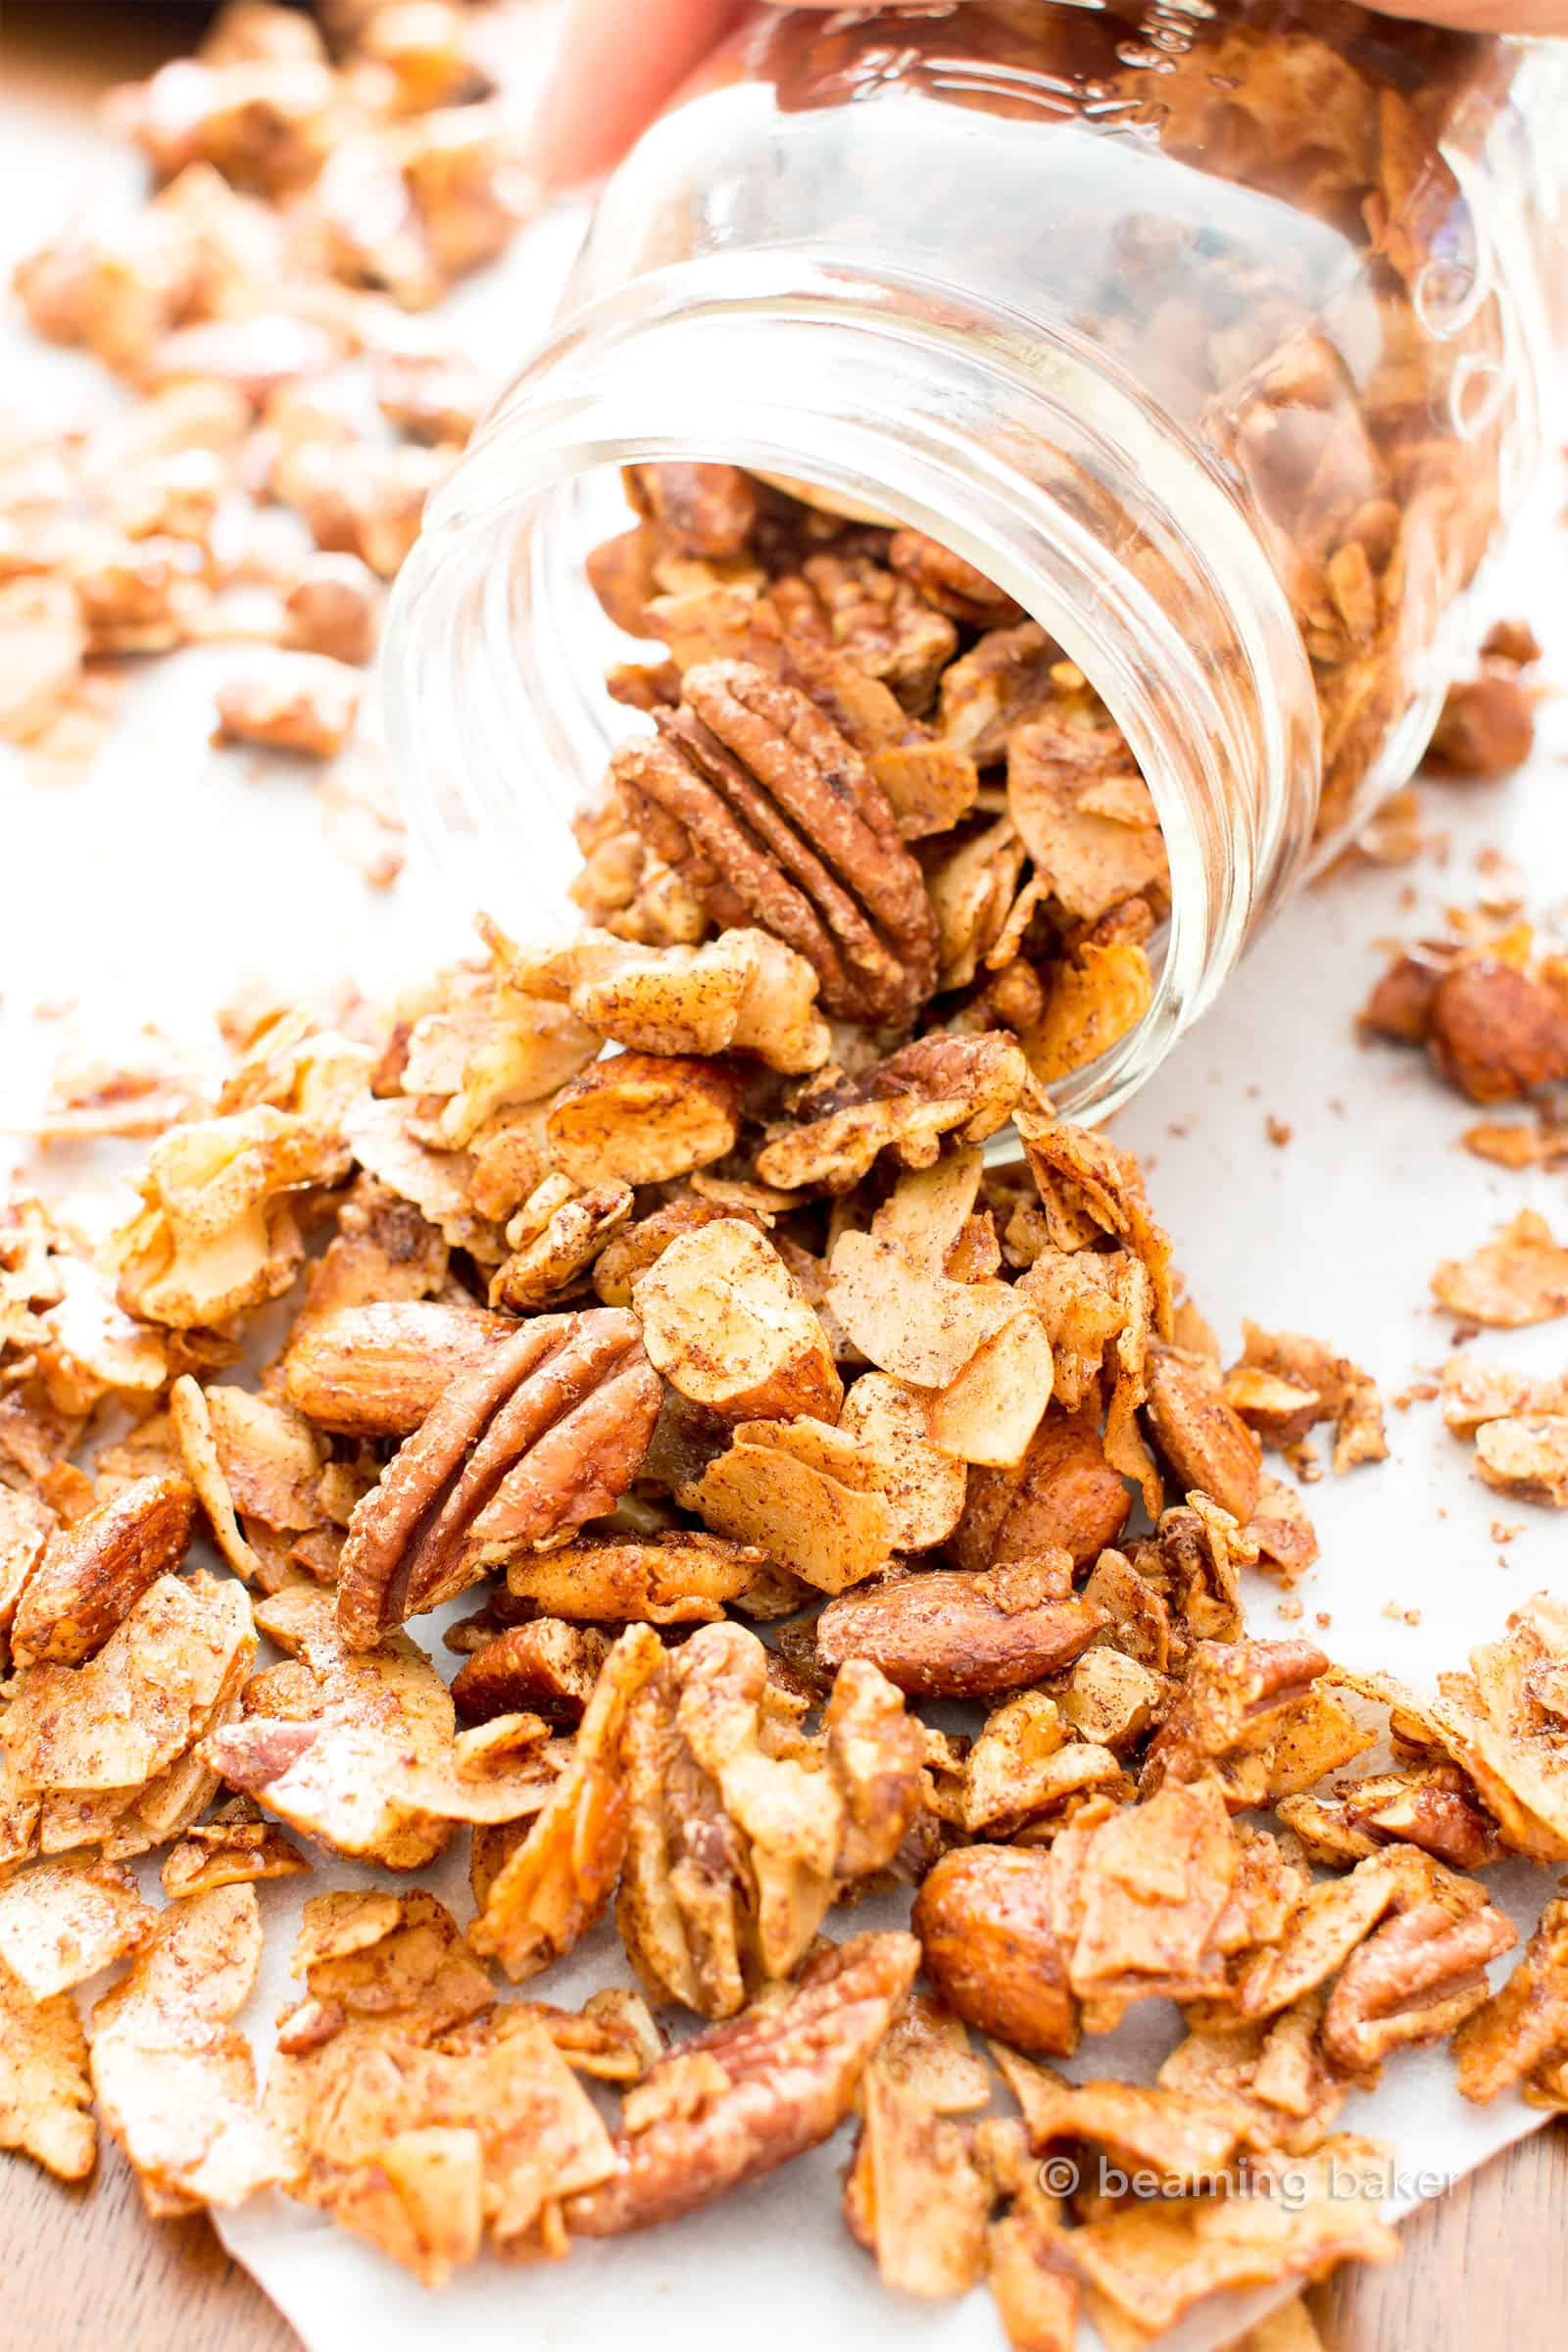 Cinnamon Grain Free Granola: my favorite grain free granola recipe—simple & easy to make granola that yields crispy, crunchy clusters and perfectly spiced, cozy cinnamon flavor. The best grain free granola! #GrainFree #Granola #HomemadeGranola | Recipe at BeamingBaker.com